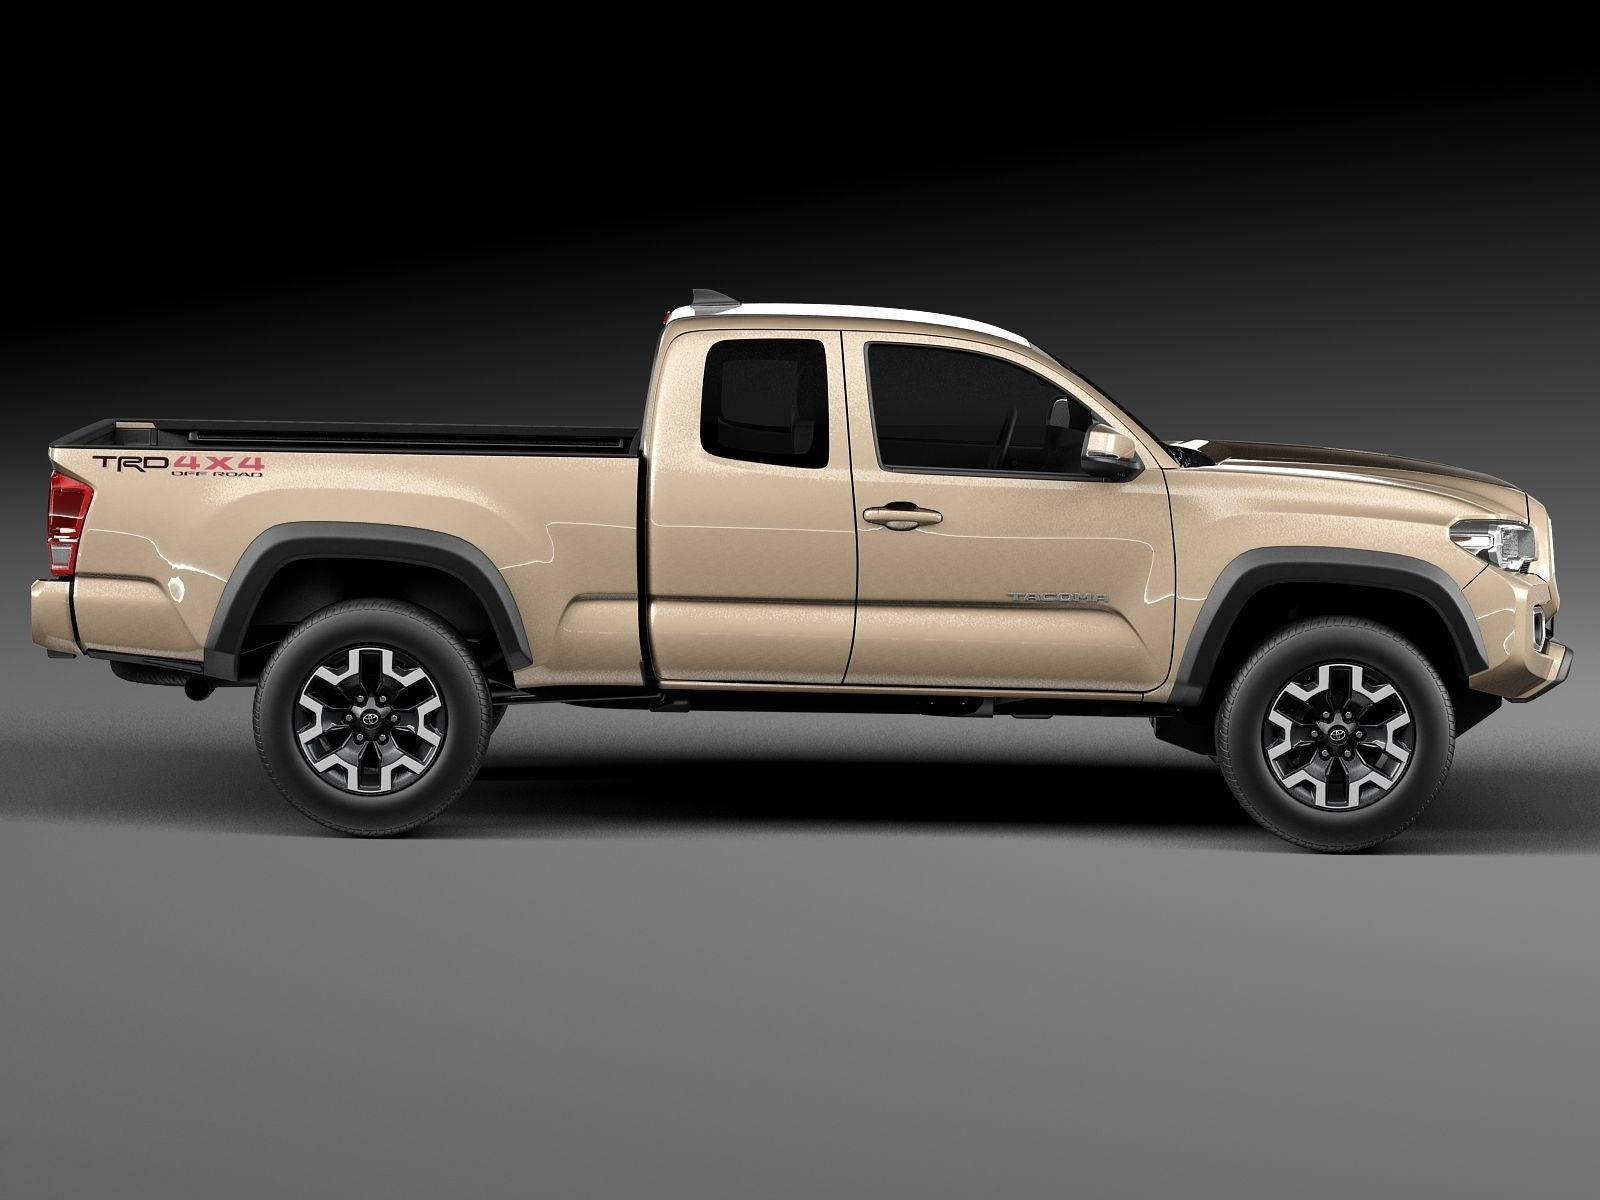 toyota tacoma trd off road 2016 3d model max obj 3ds fbx c4d lwo. Black Bedroom Furniture Sets. Home Design Ideas